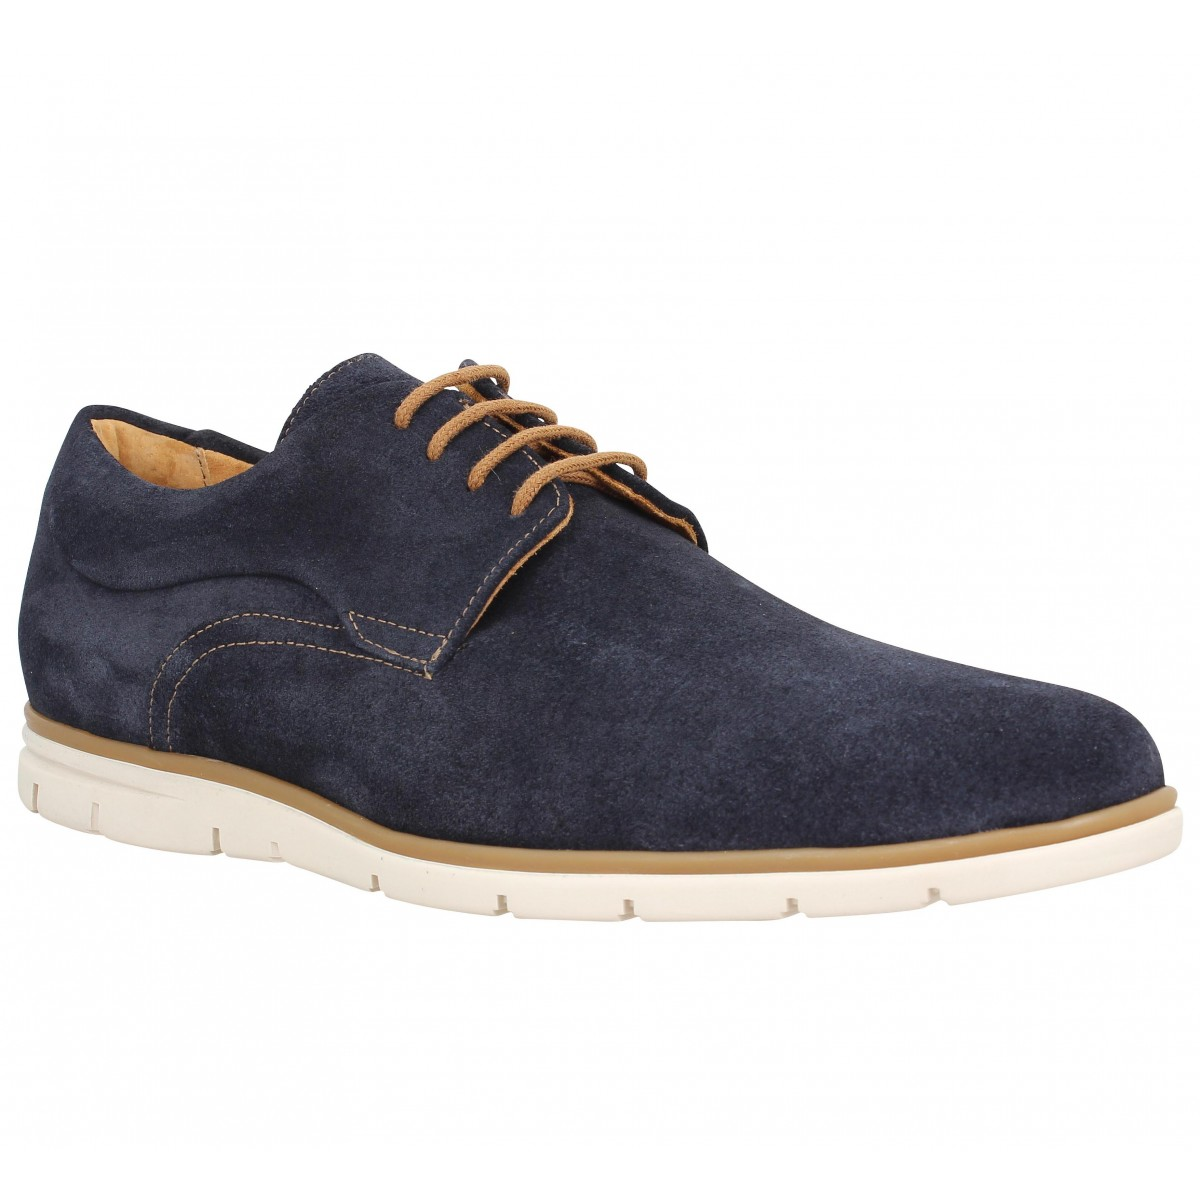 Chaussures à lacets SCHMOOVE Shaft Derby velours Homme Navy